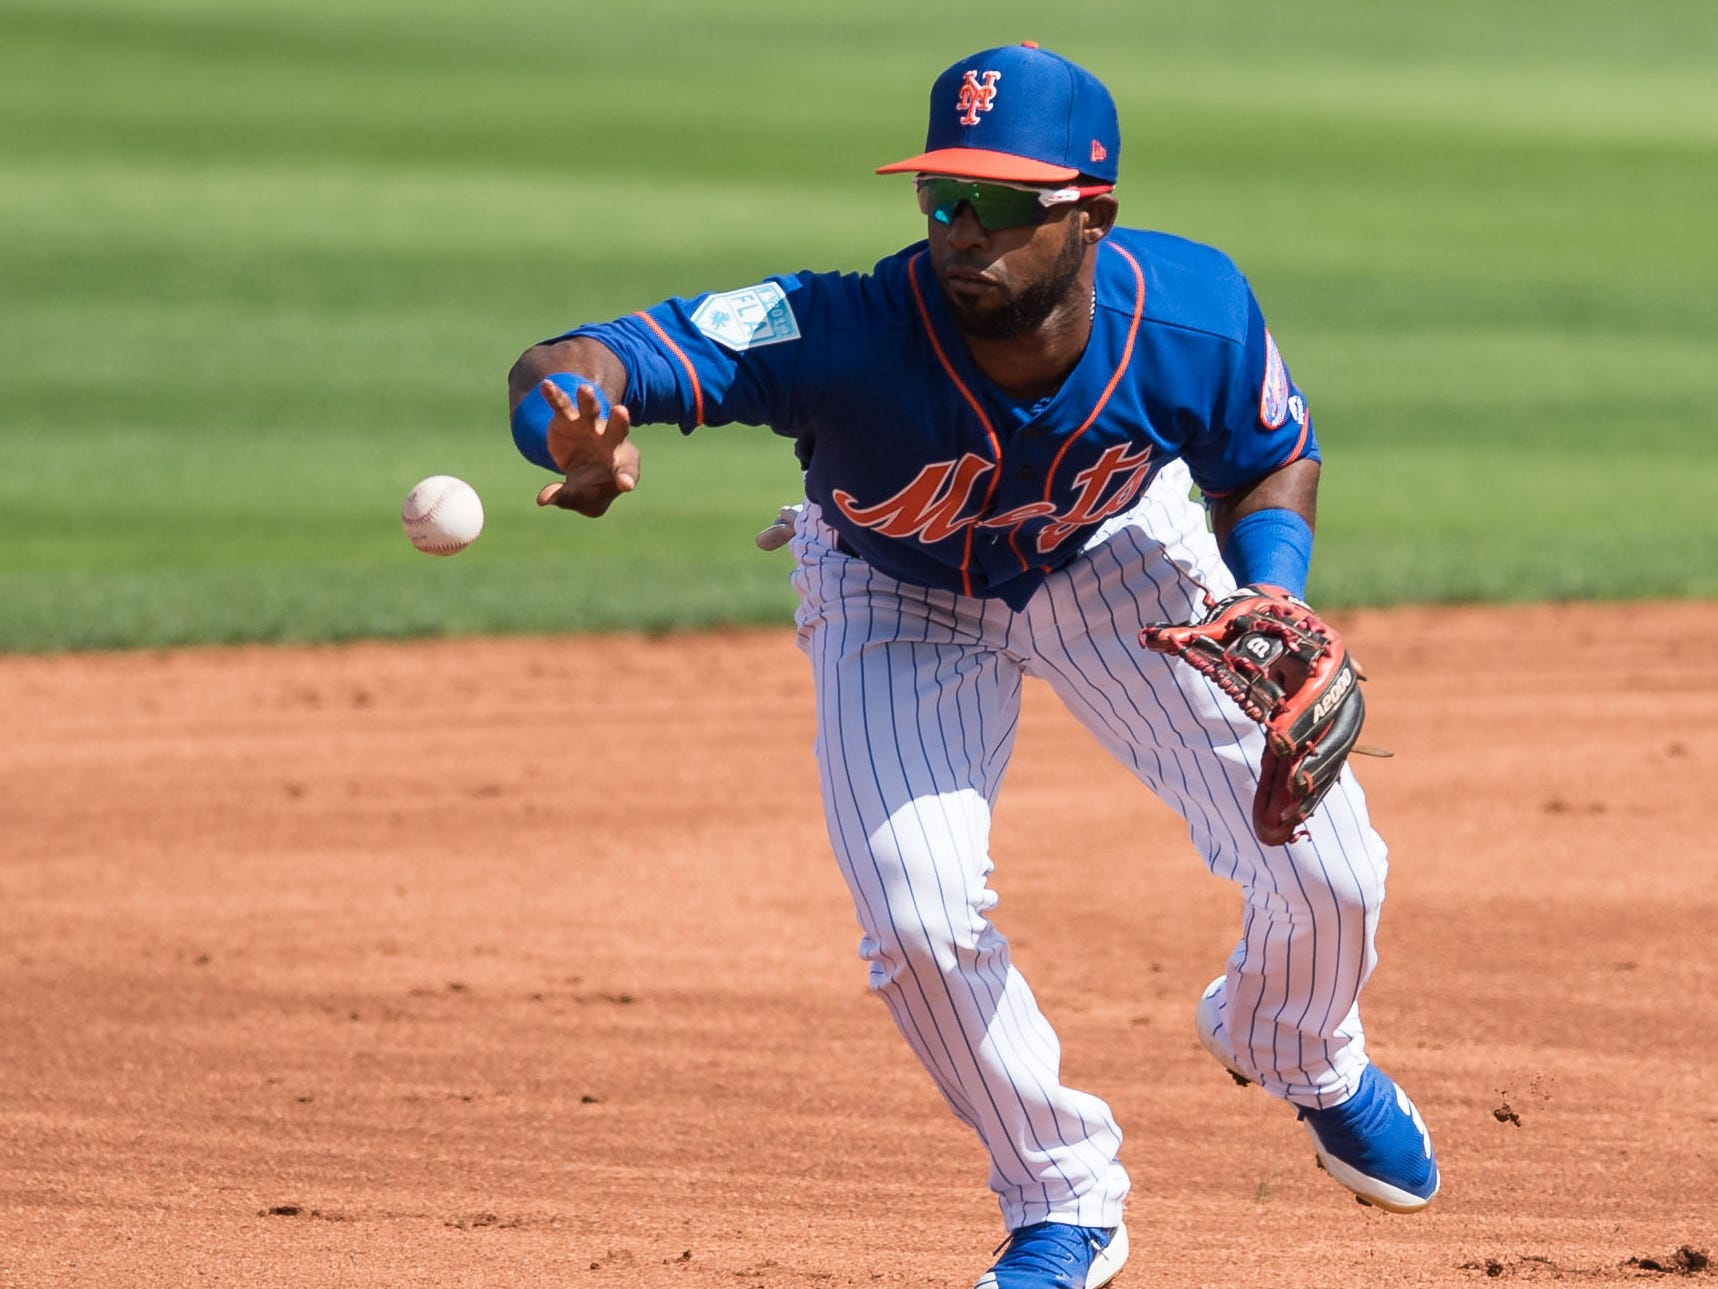 New York Mets second-baseman Arismendy Alcántara fields a grounder and tosses it to shortstop Amed Rosario to force Atlanta Braves baserunner Austin Riley out at second in the second inning during the opening spring training game Saturday, Feb. 23, 2019, at First Data Field in Port St. Lucie.